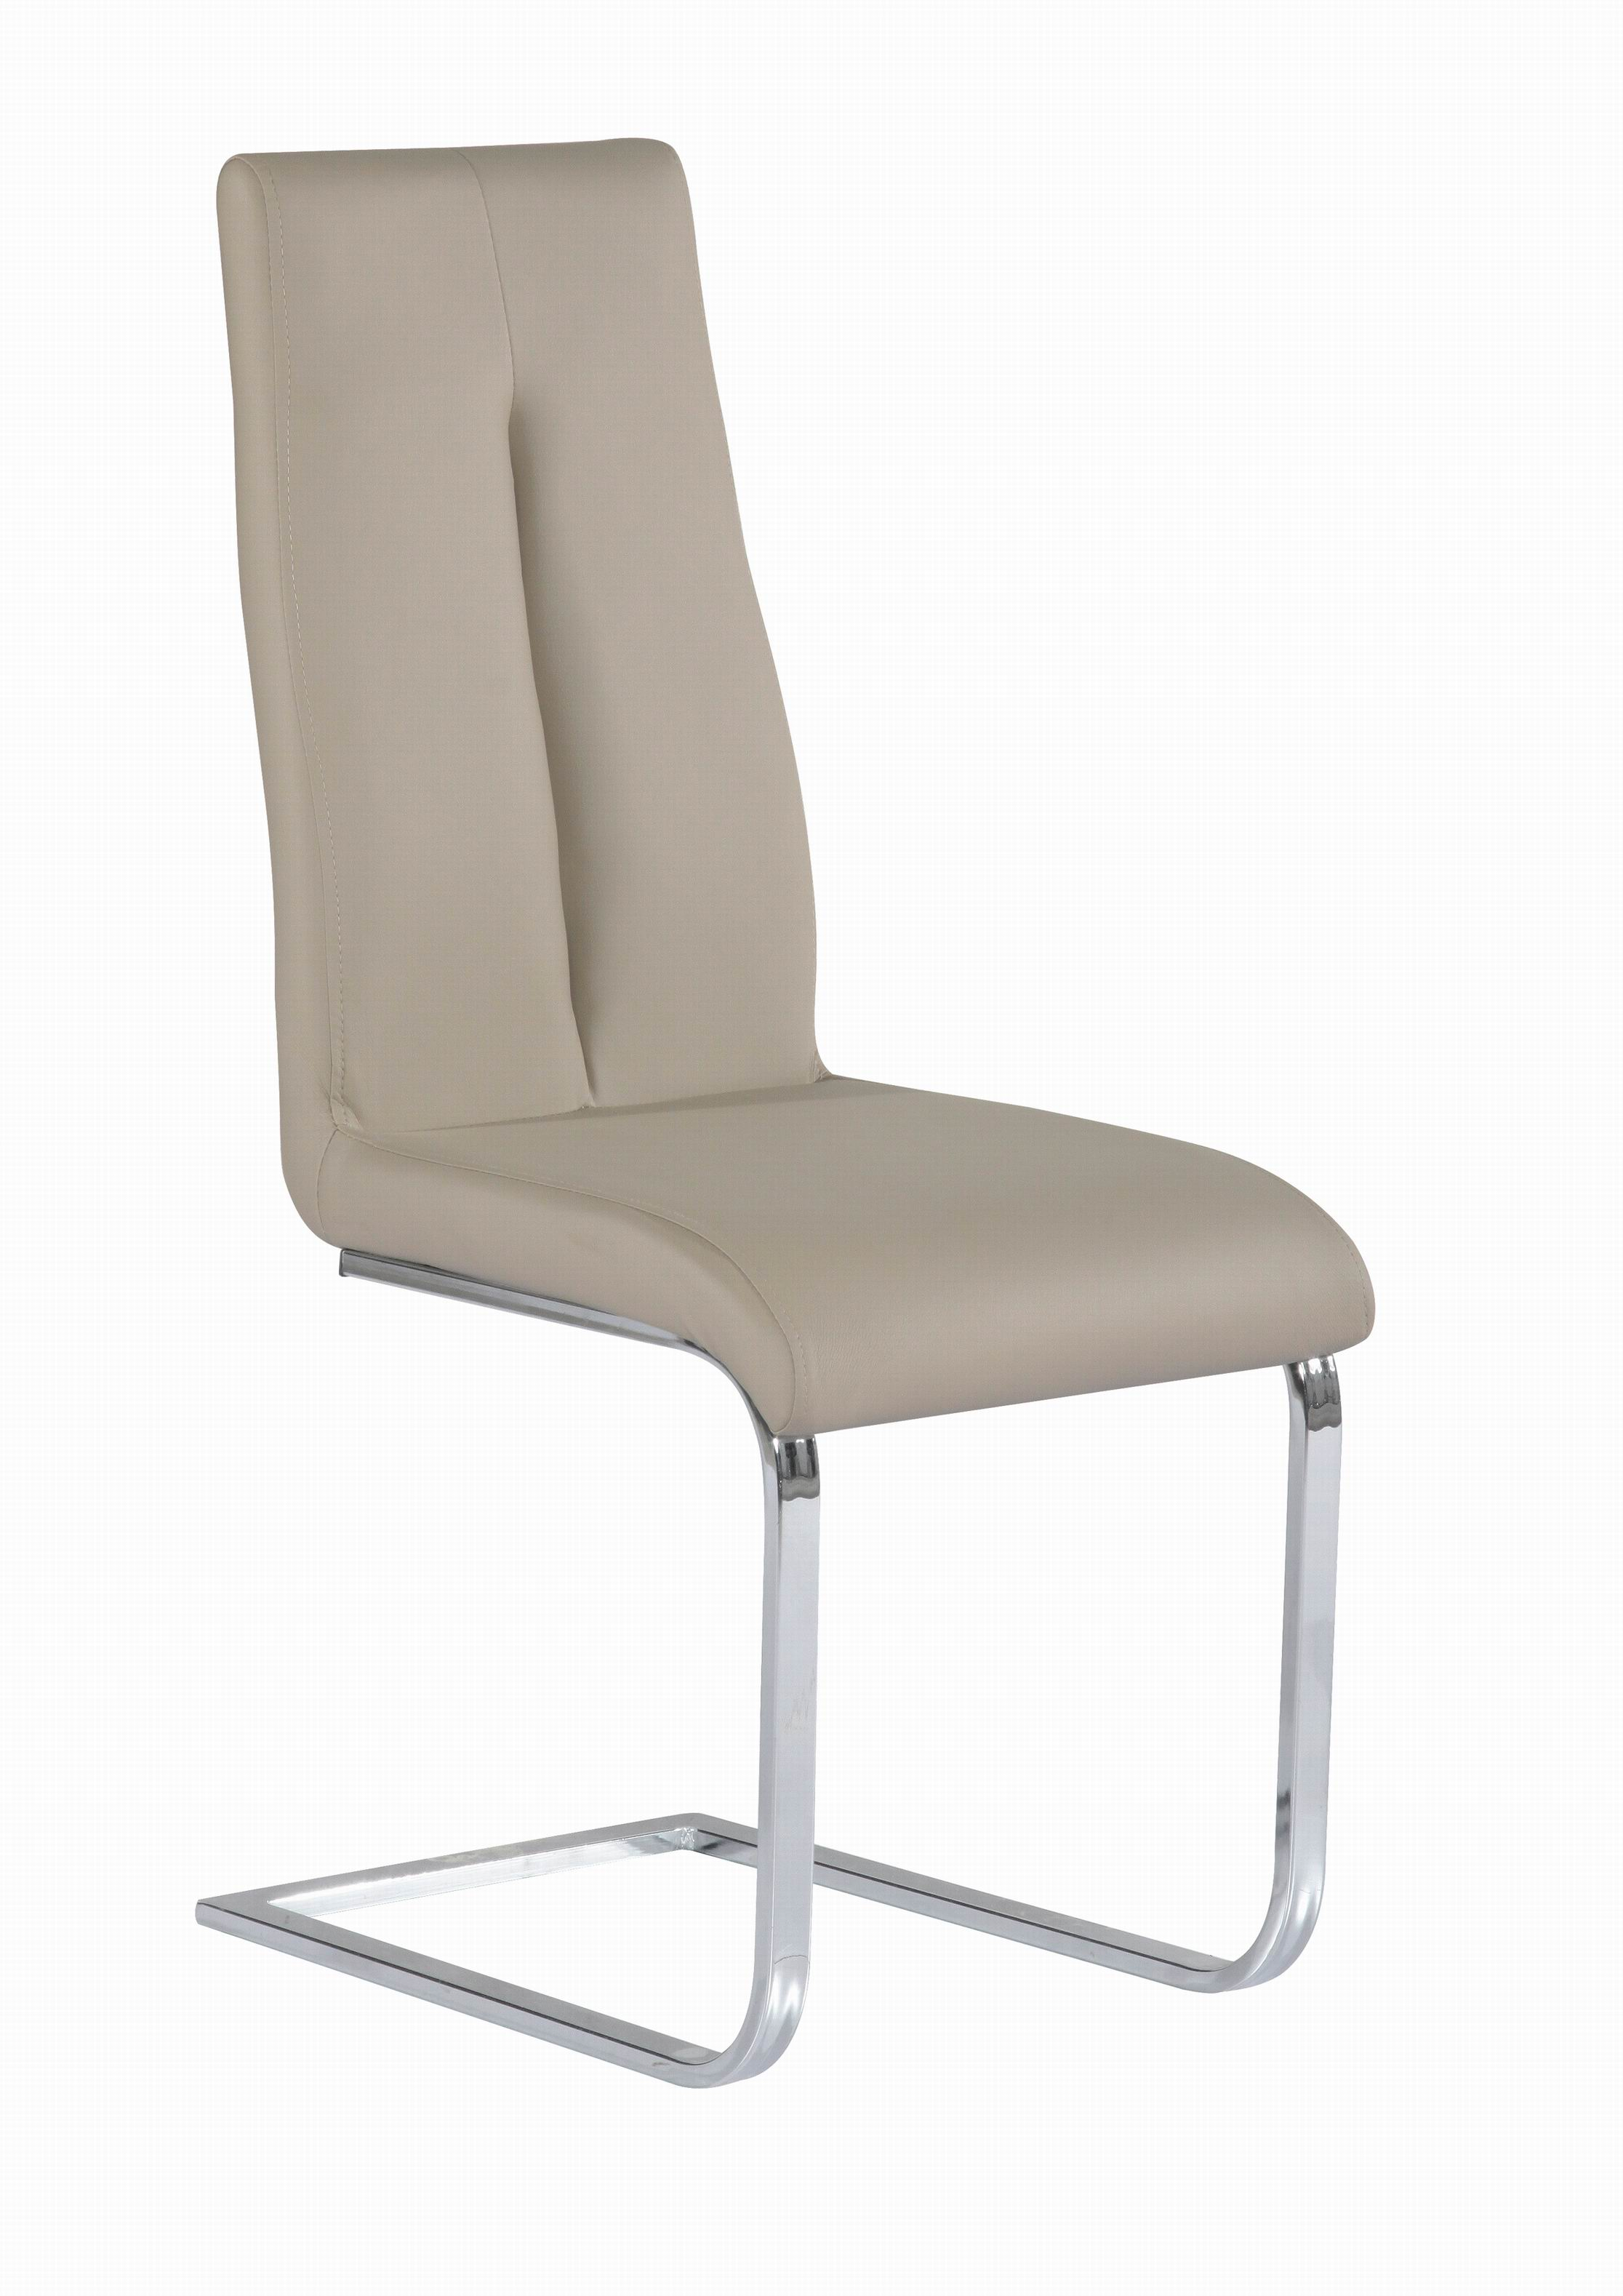 Comfortable Taupe Upholstered Side Chair With Chrome Frame